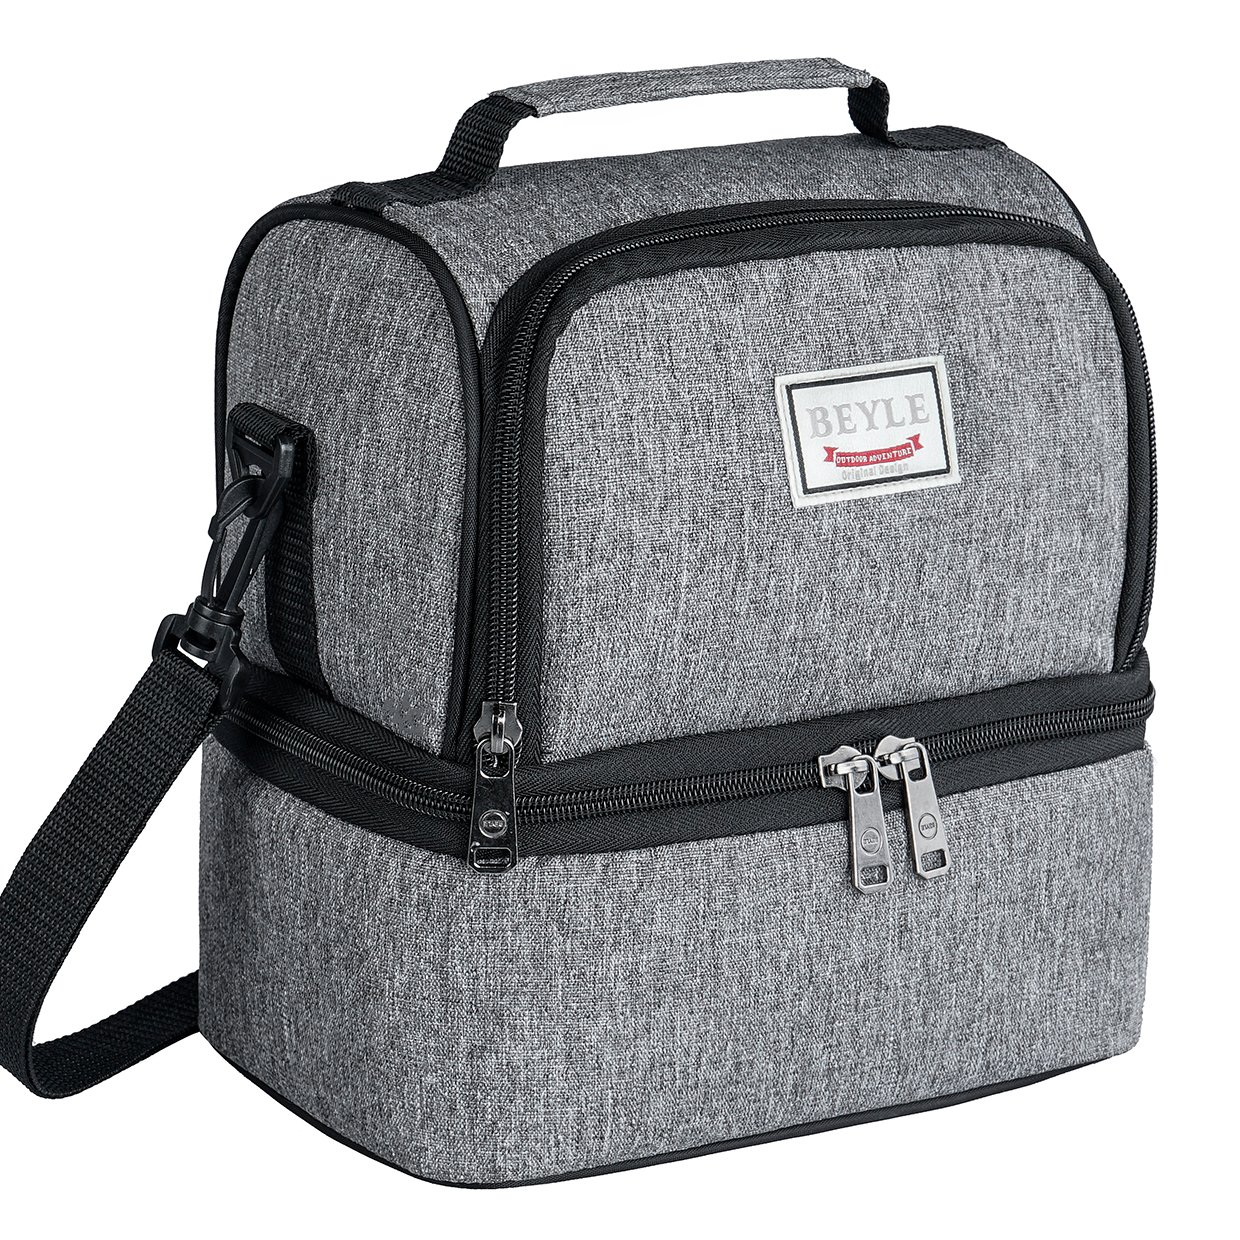 Lunch Box, Beyle Insulated Lunch Bag for Men & Women Kid, Mens Large Refrigerated Lunch Box Cooler Tote Bag, Double Deck Cooler (Grey) (Black)